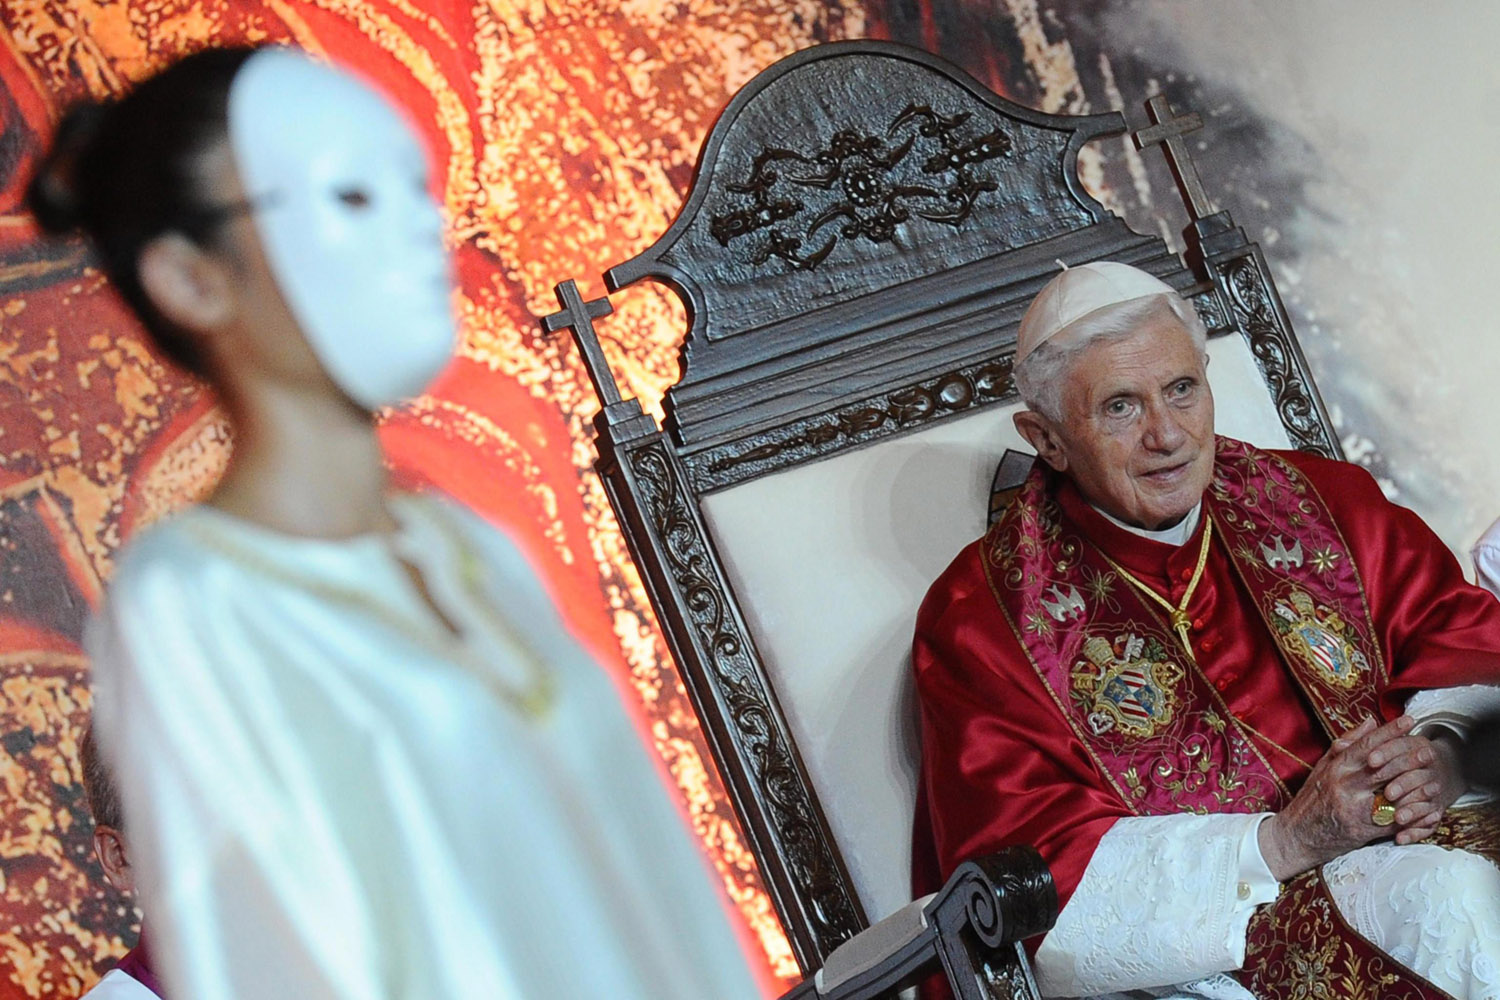 Sept. 15, 2012. Pope Benedict XVI watches actors during his visit to the Lebanese Maronite patriarch in Bkerke, Lebanon.